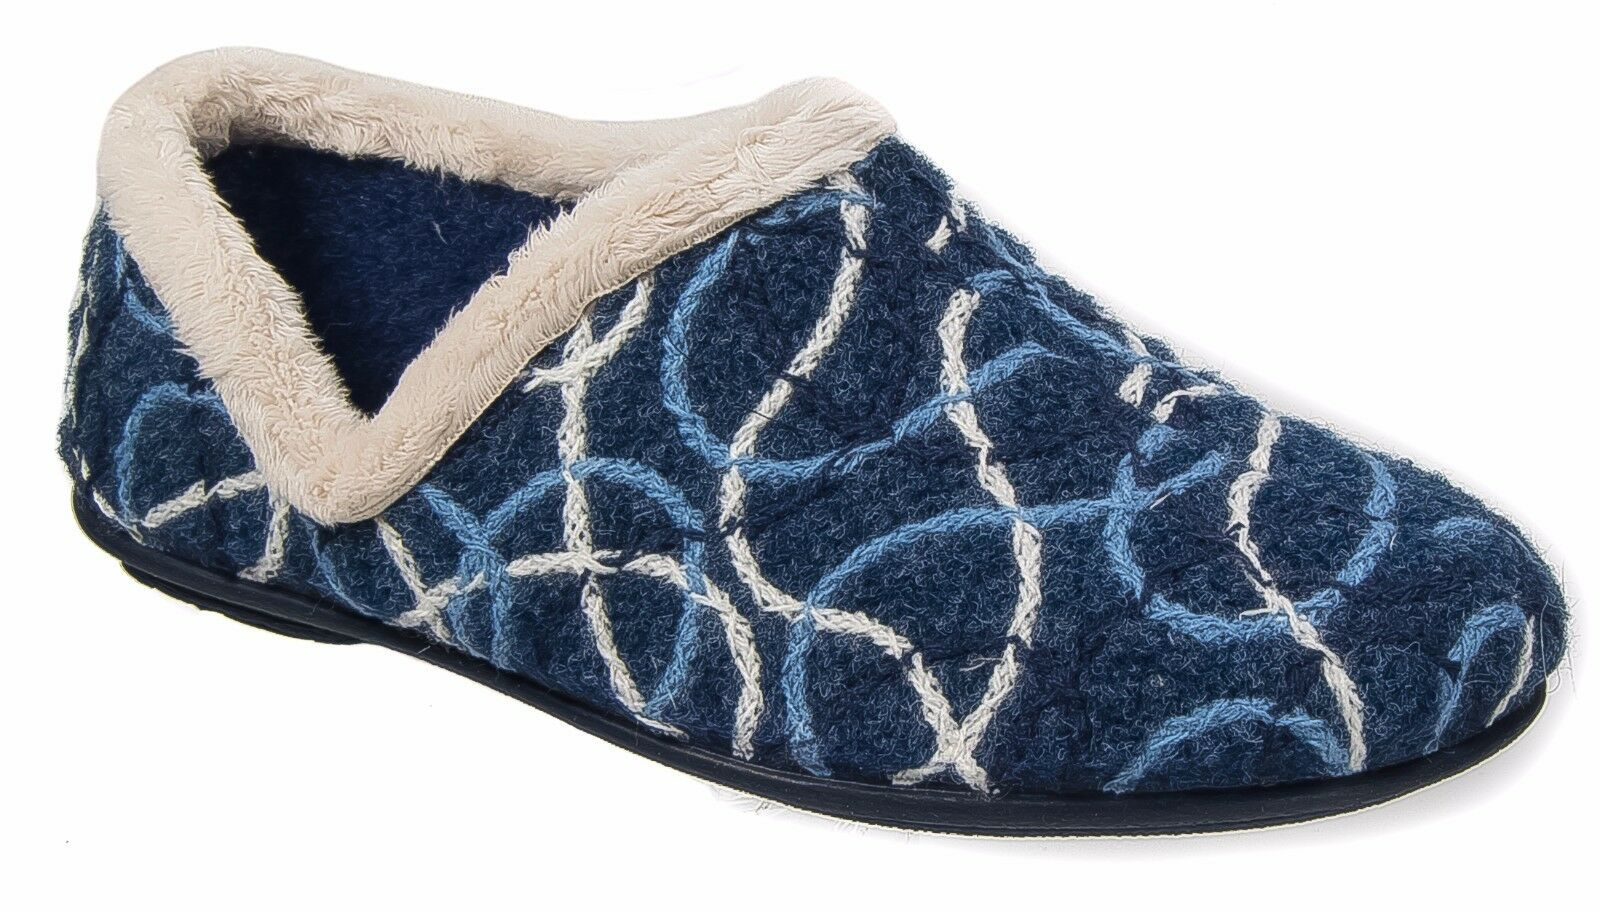 Womens Ladies Slip On Slippers / Padded Patterned Blue Knitted Sleepers 3 to 8